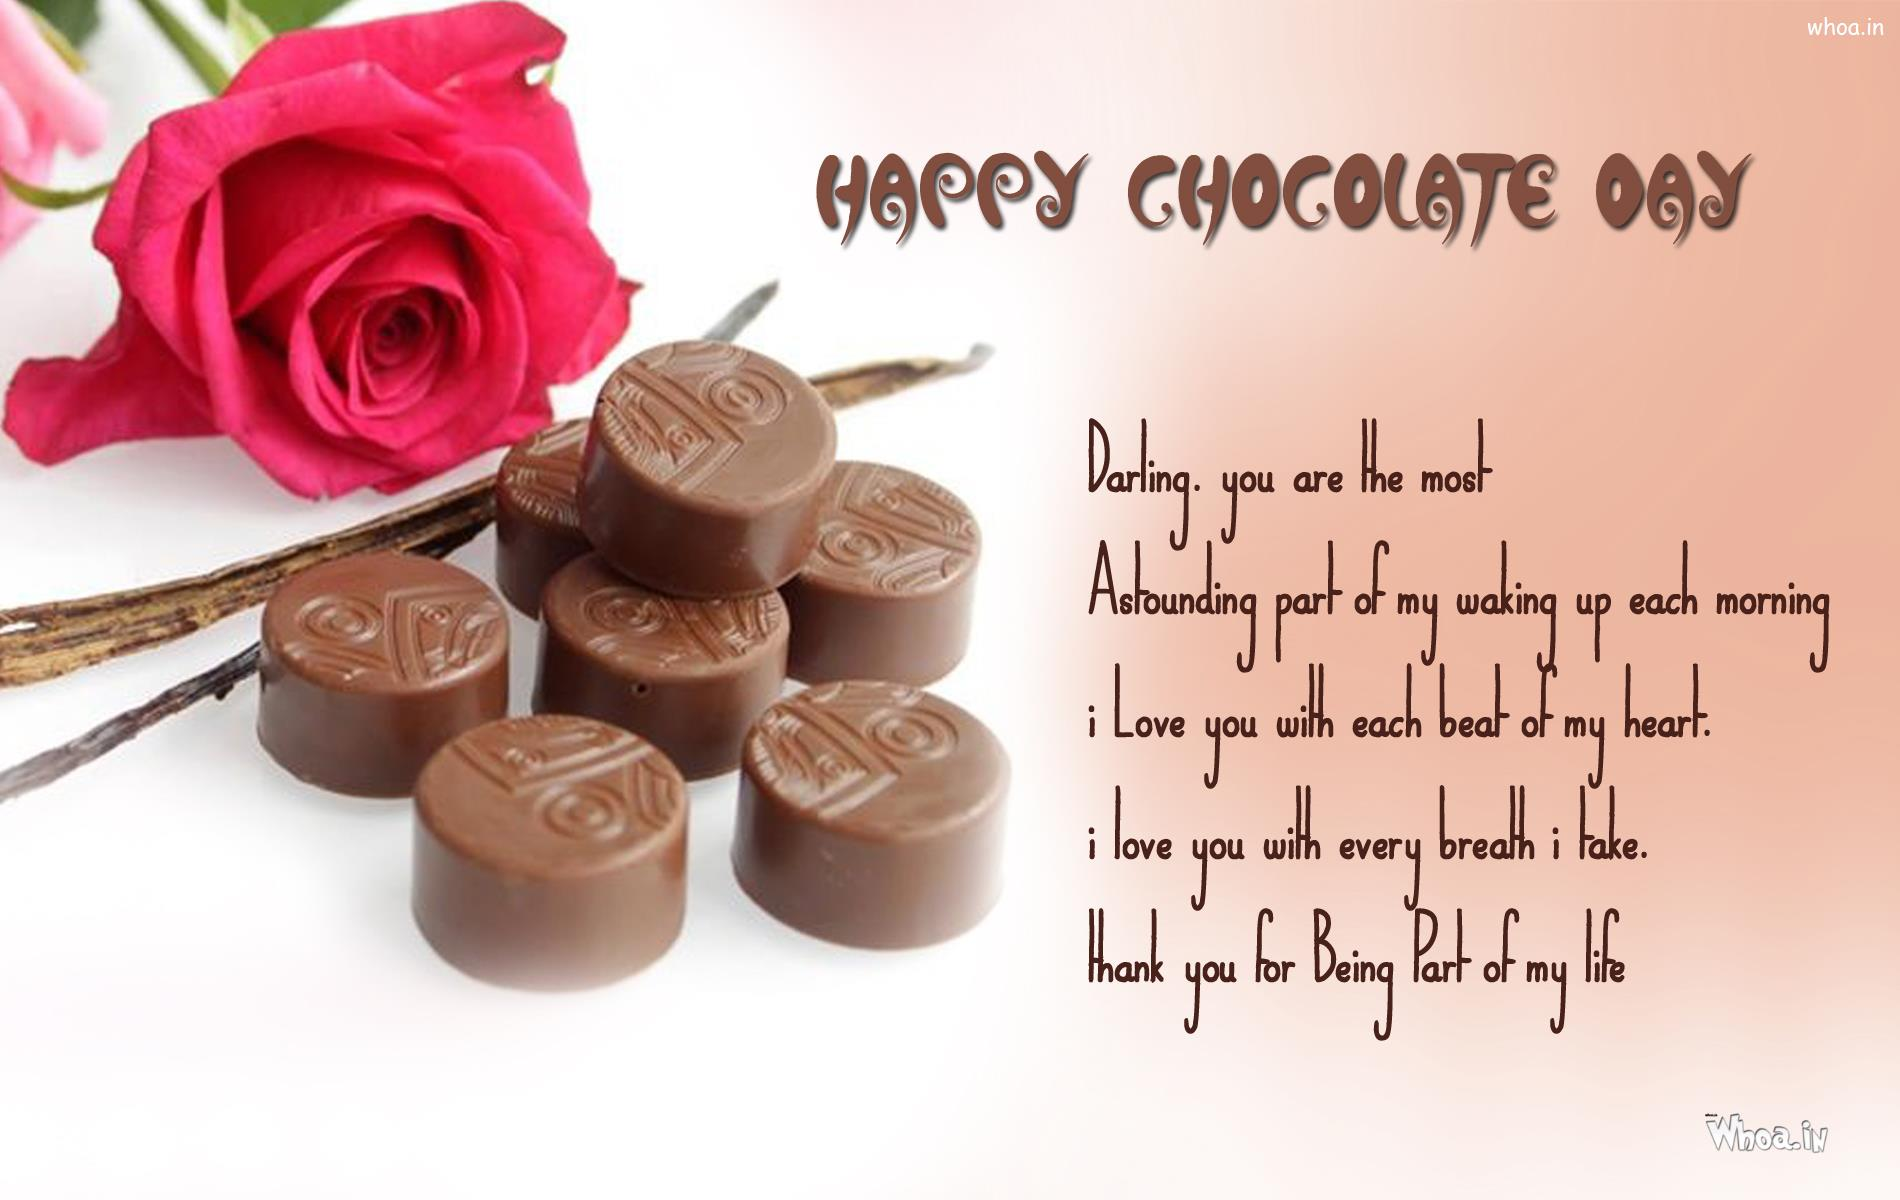 Happy Chocolate Day Greetings With Round Shape Chocolates